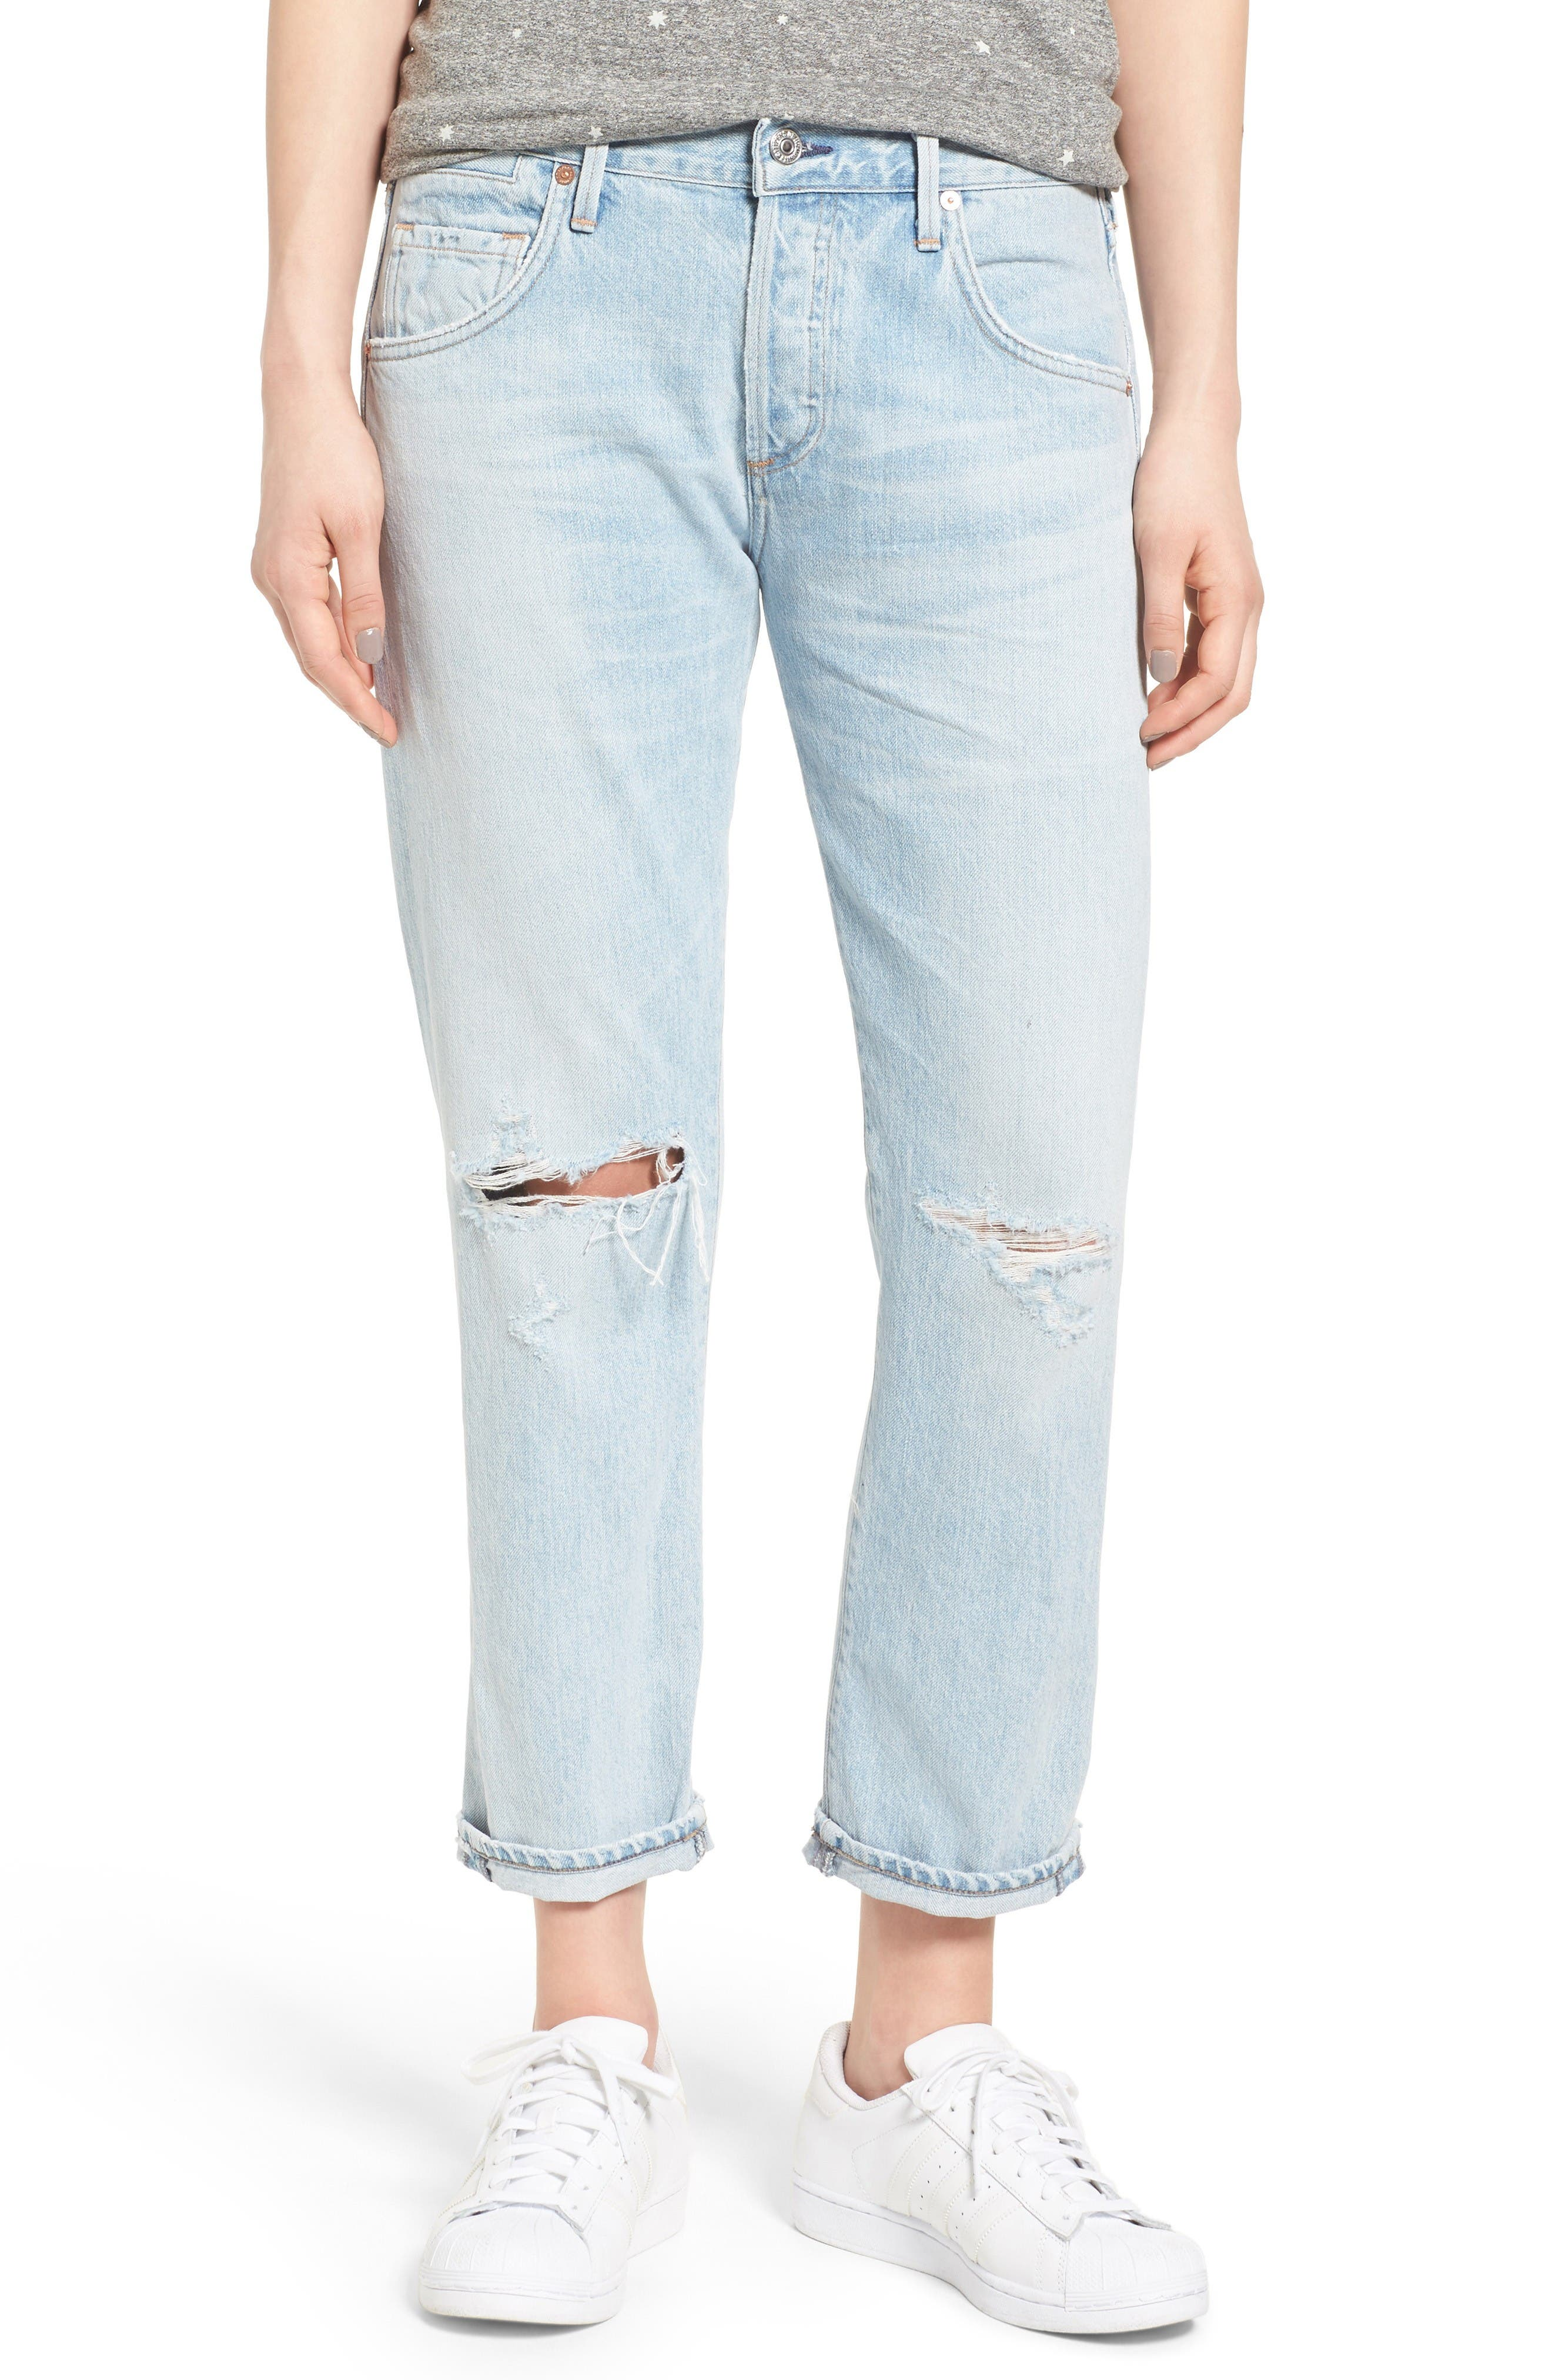 Alternate Image 1 Selected - Citizens of Humanity Emerson High Waist Ripped Boyfriend Jeans (Distressed Rock)